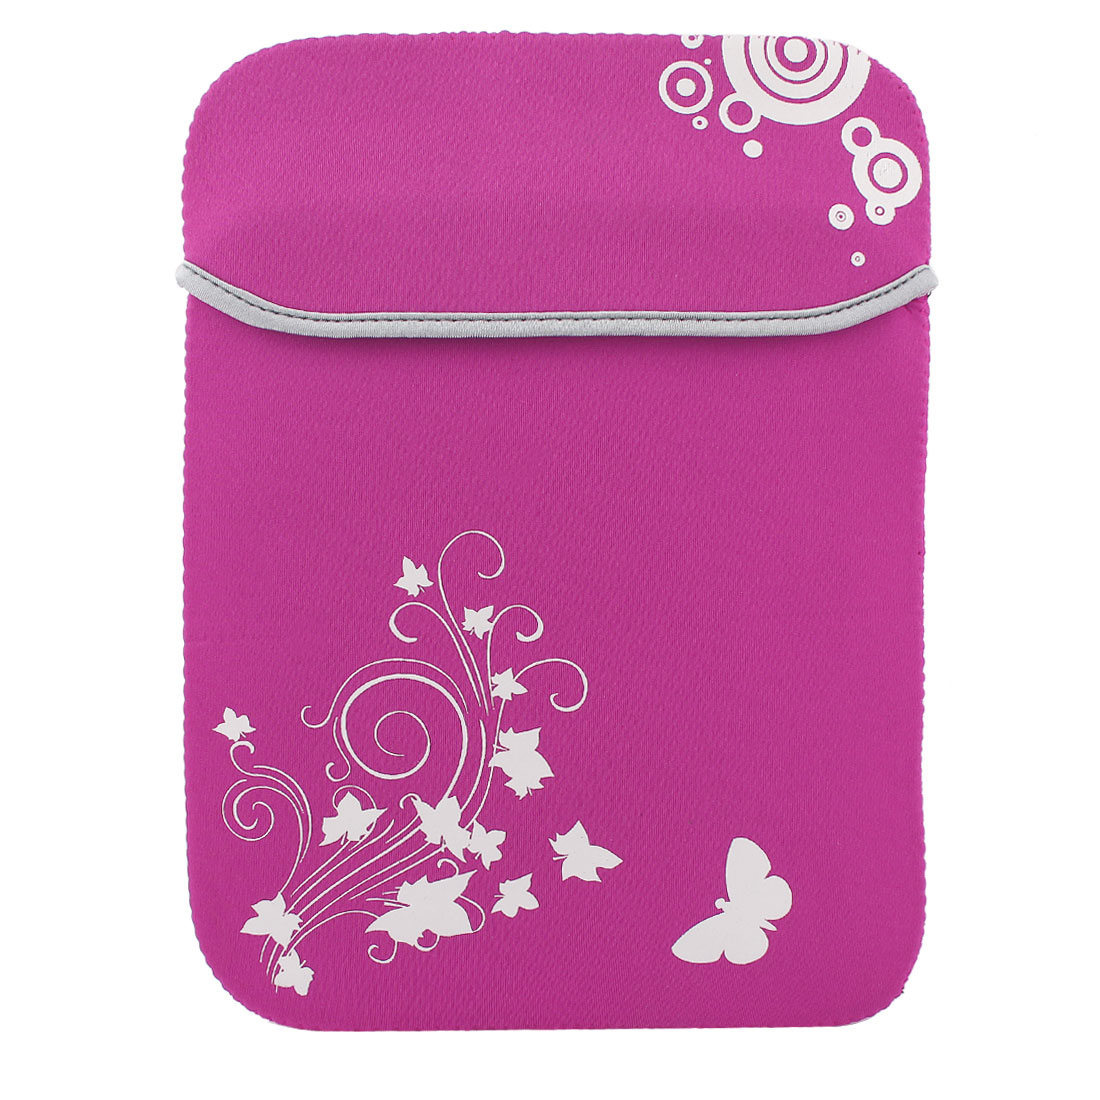 "12"" Flower Butterfly Print Soft PC Laptop Tablet Netbook Sleeve Case Bag Fuchsia"